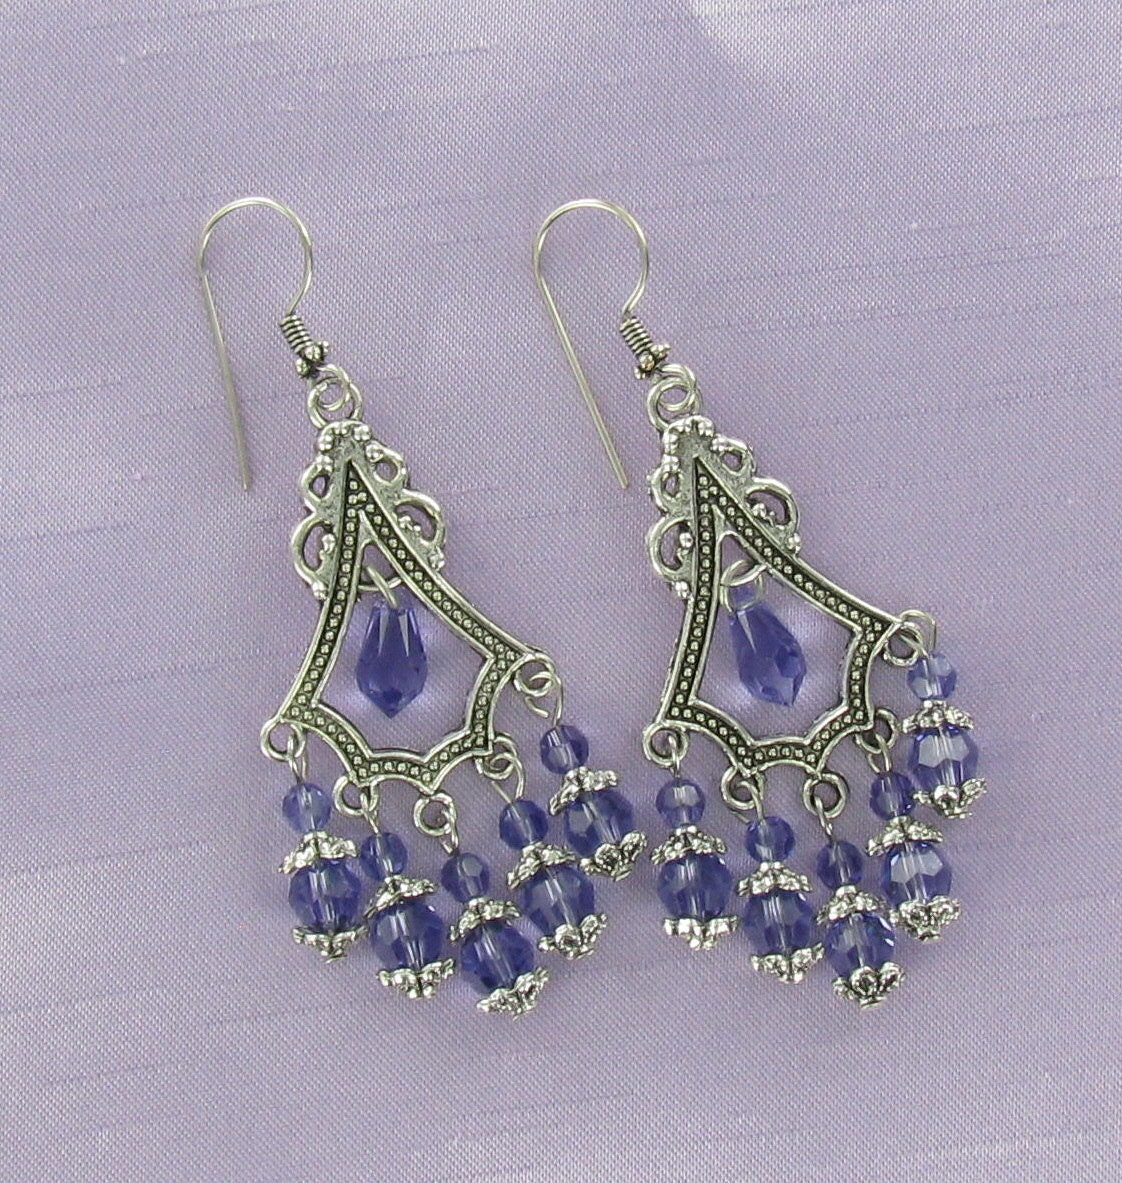 CHANDELIER EARRINGS - Pewter and Swarovski Crystal Dangles